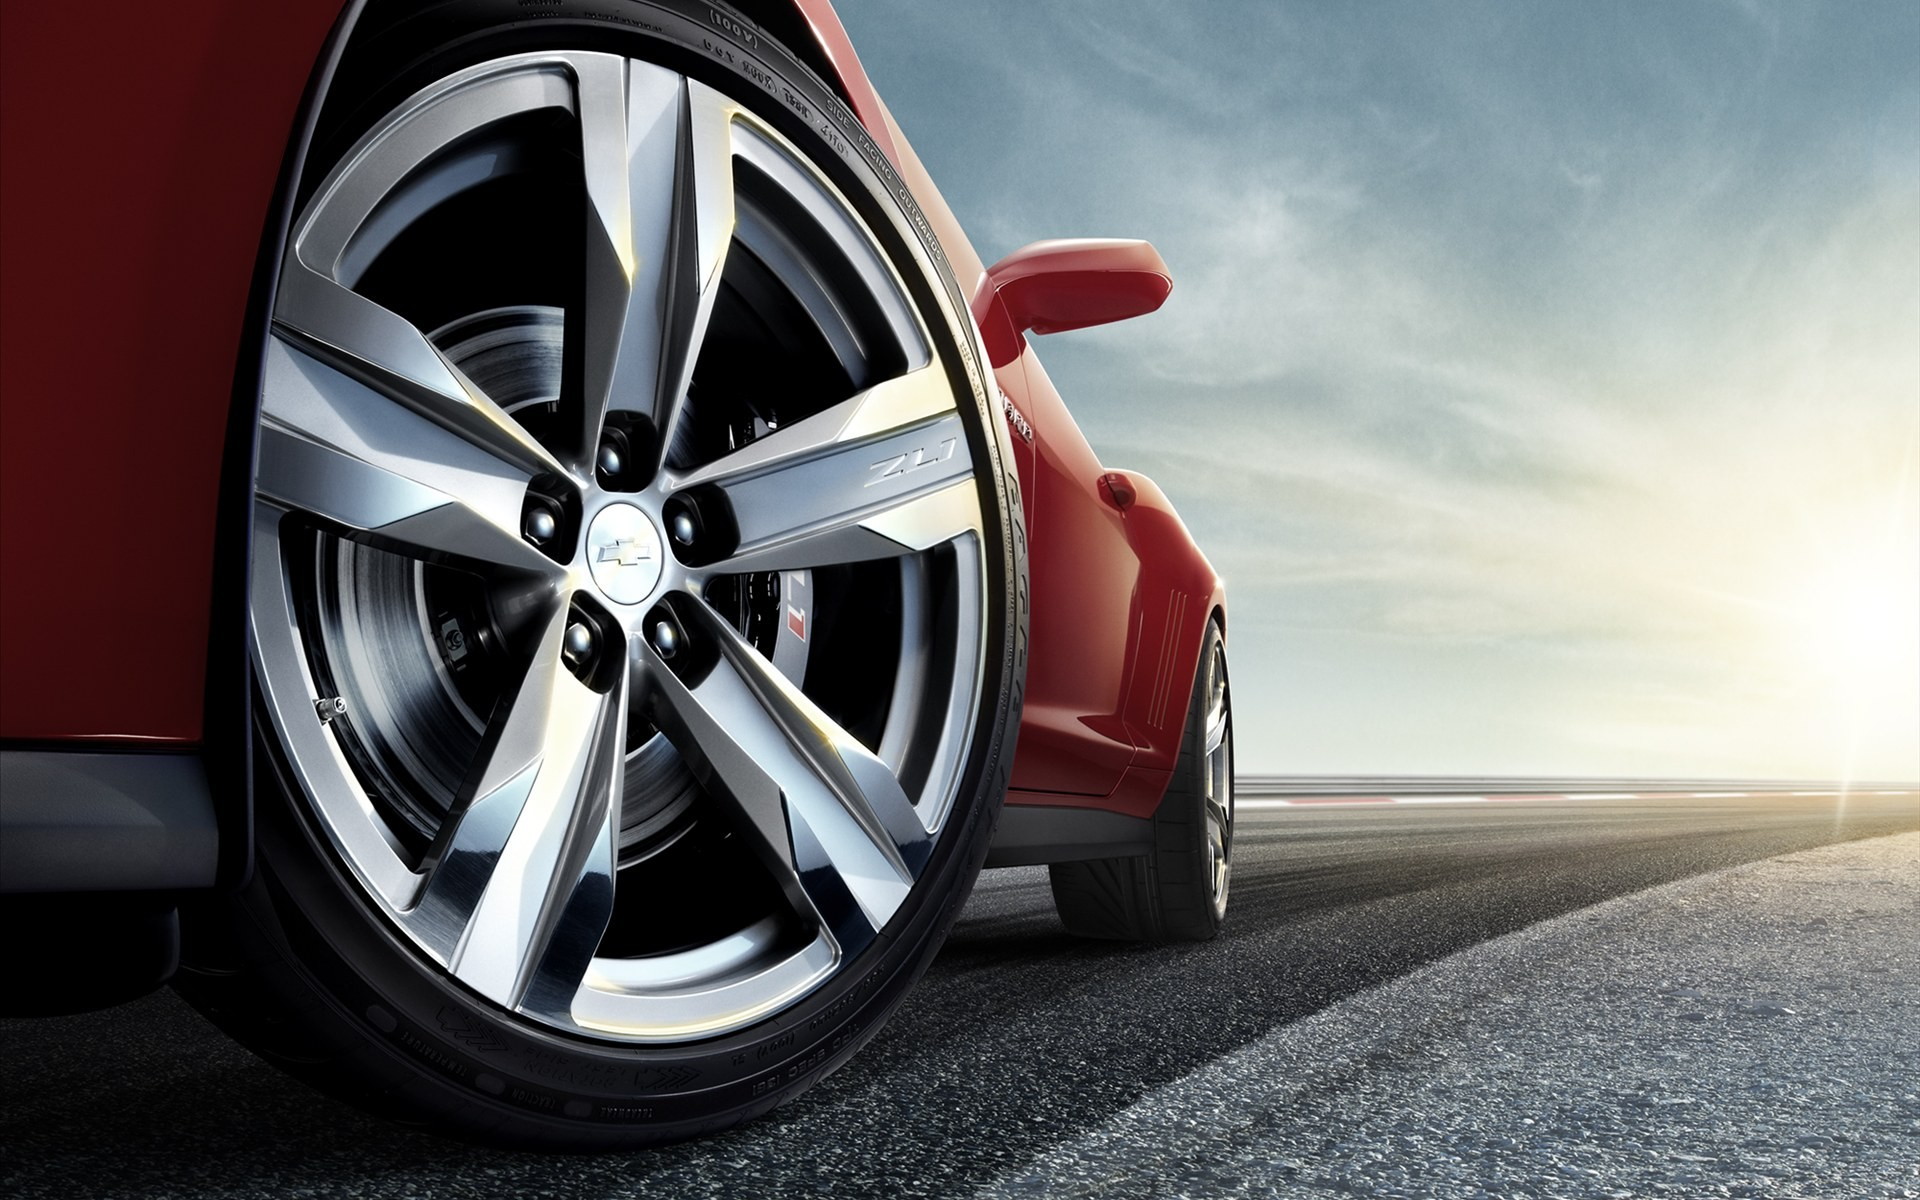 Salient Features of the aodhan wheels ds02